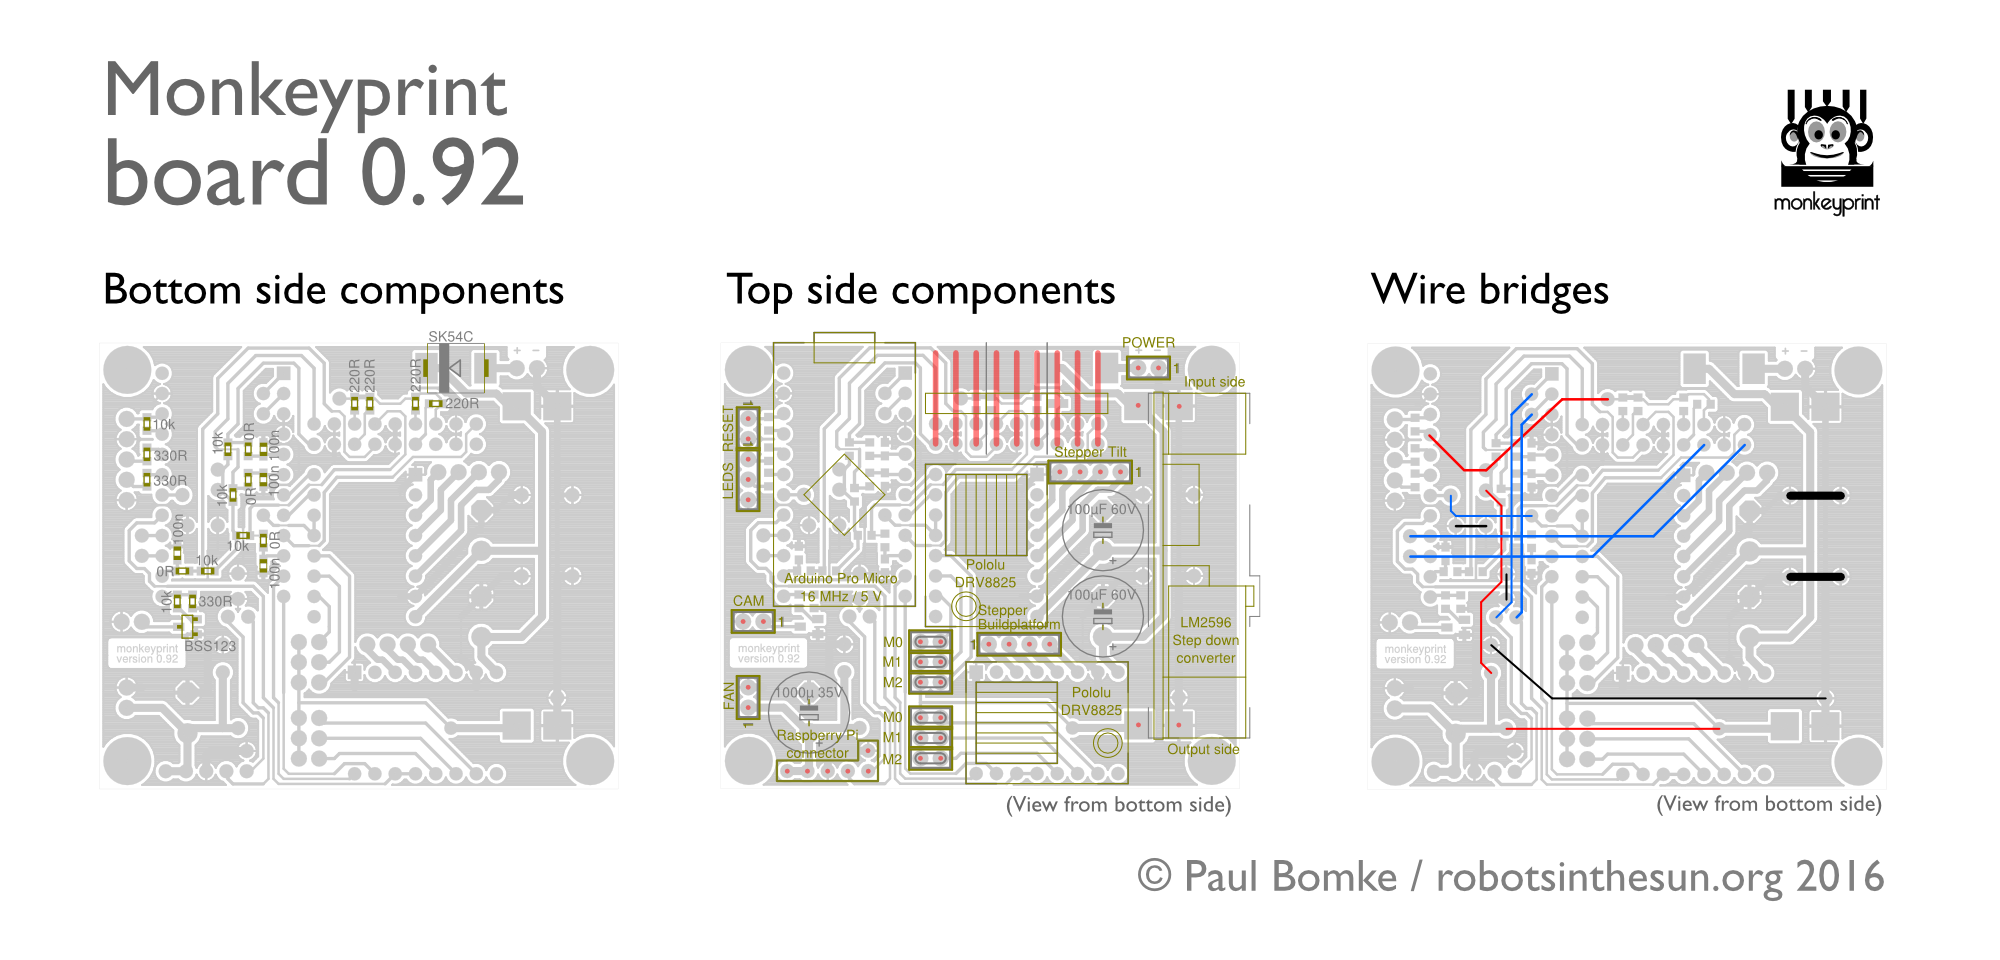 Schematic diagram of the Monkeyprint board showing which component belongs where.